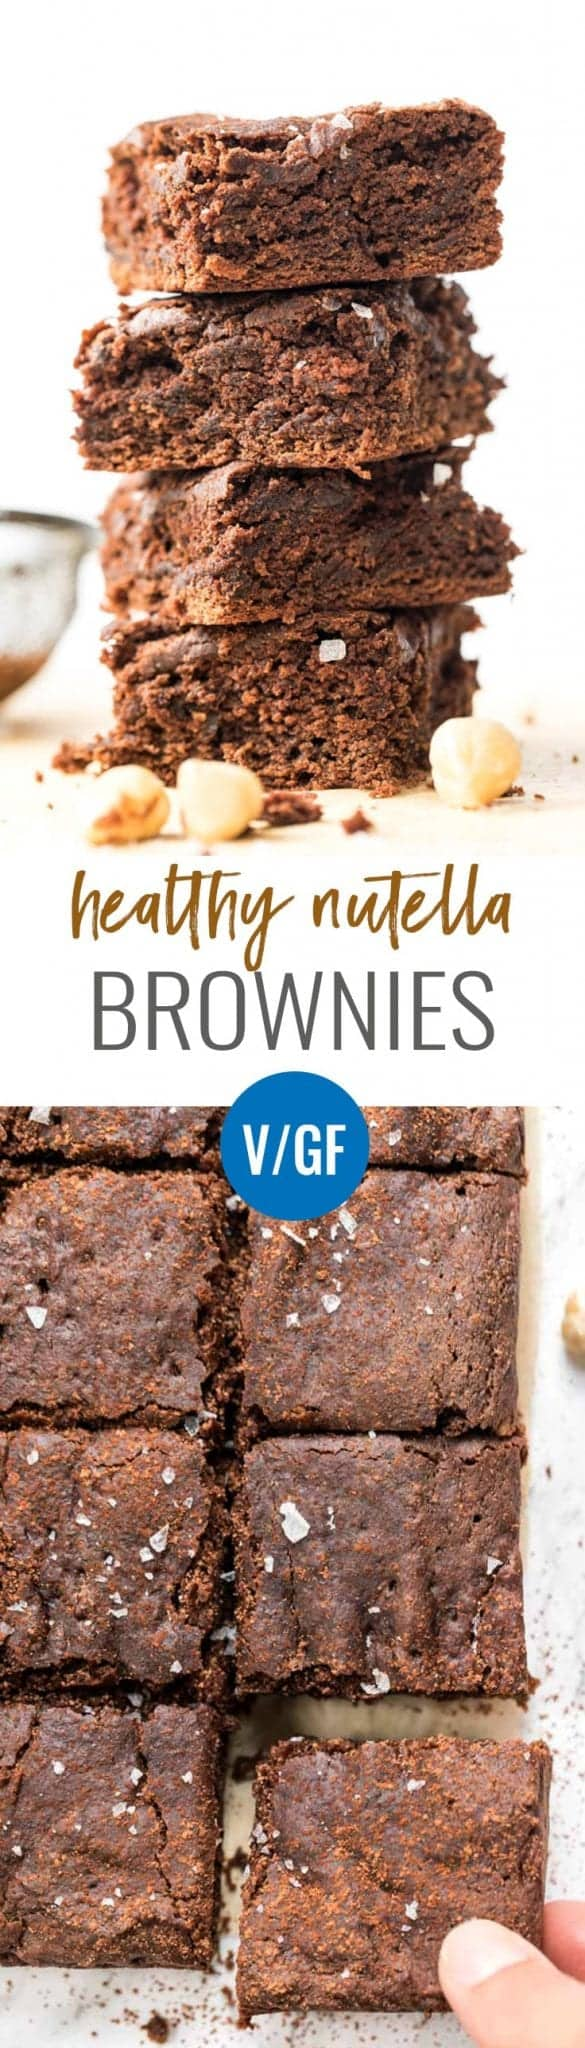 vegan nutella brownies with homemade nutella and quinoa flour for a healthy treat